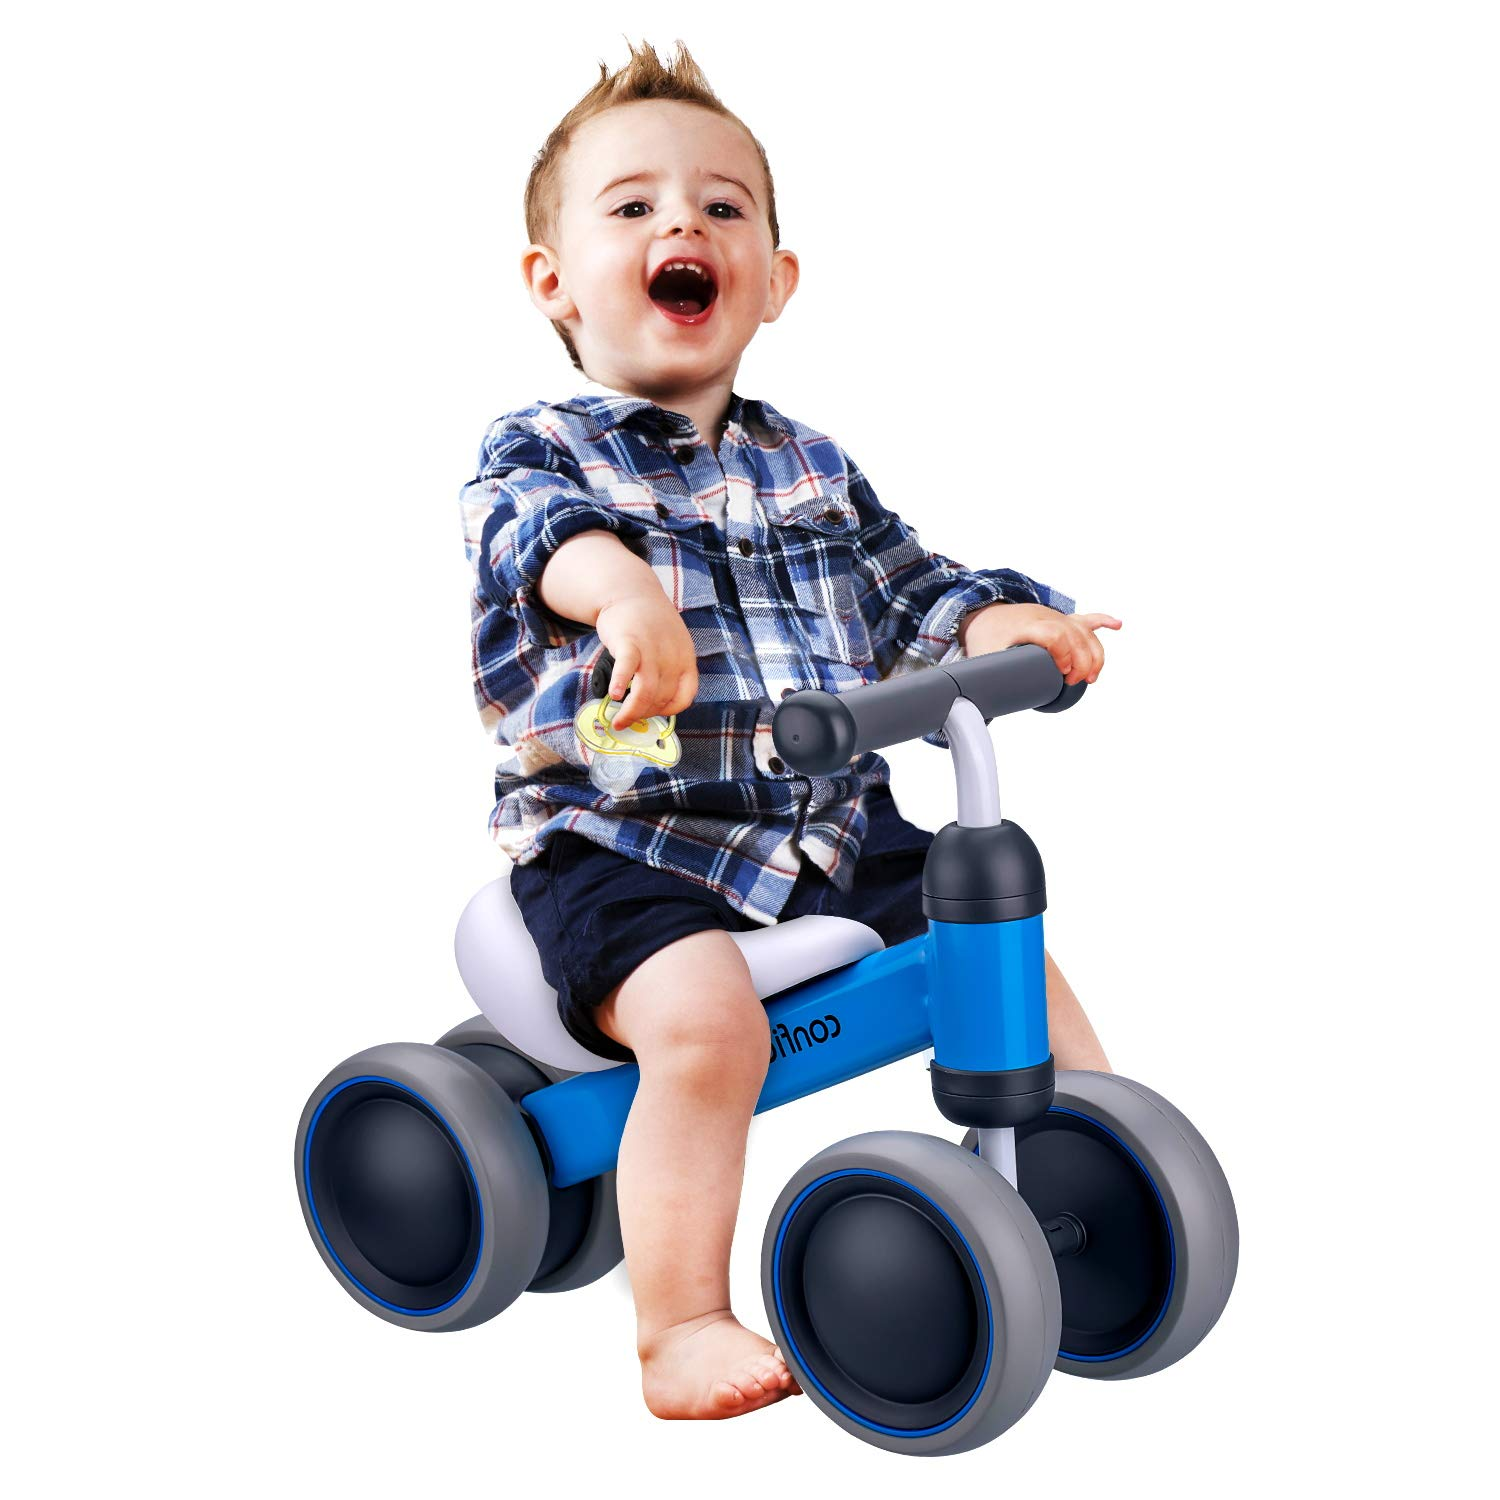 BonBonBrothers Baby Balance Bike, Sturdy Balance Bike Bicycle 6-24 Months, Cute Balance Bike for Toddler with 4 Wheels, Ideal Gift Choice for First Birthday